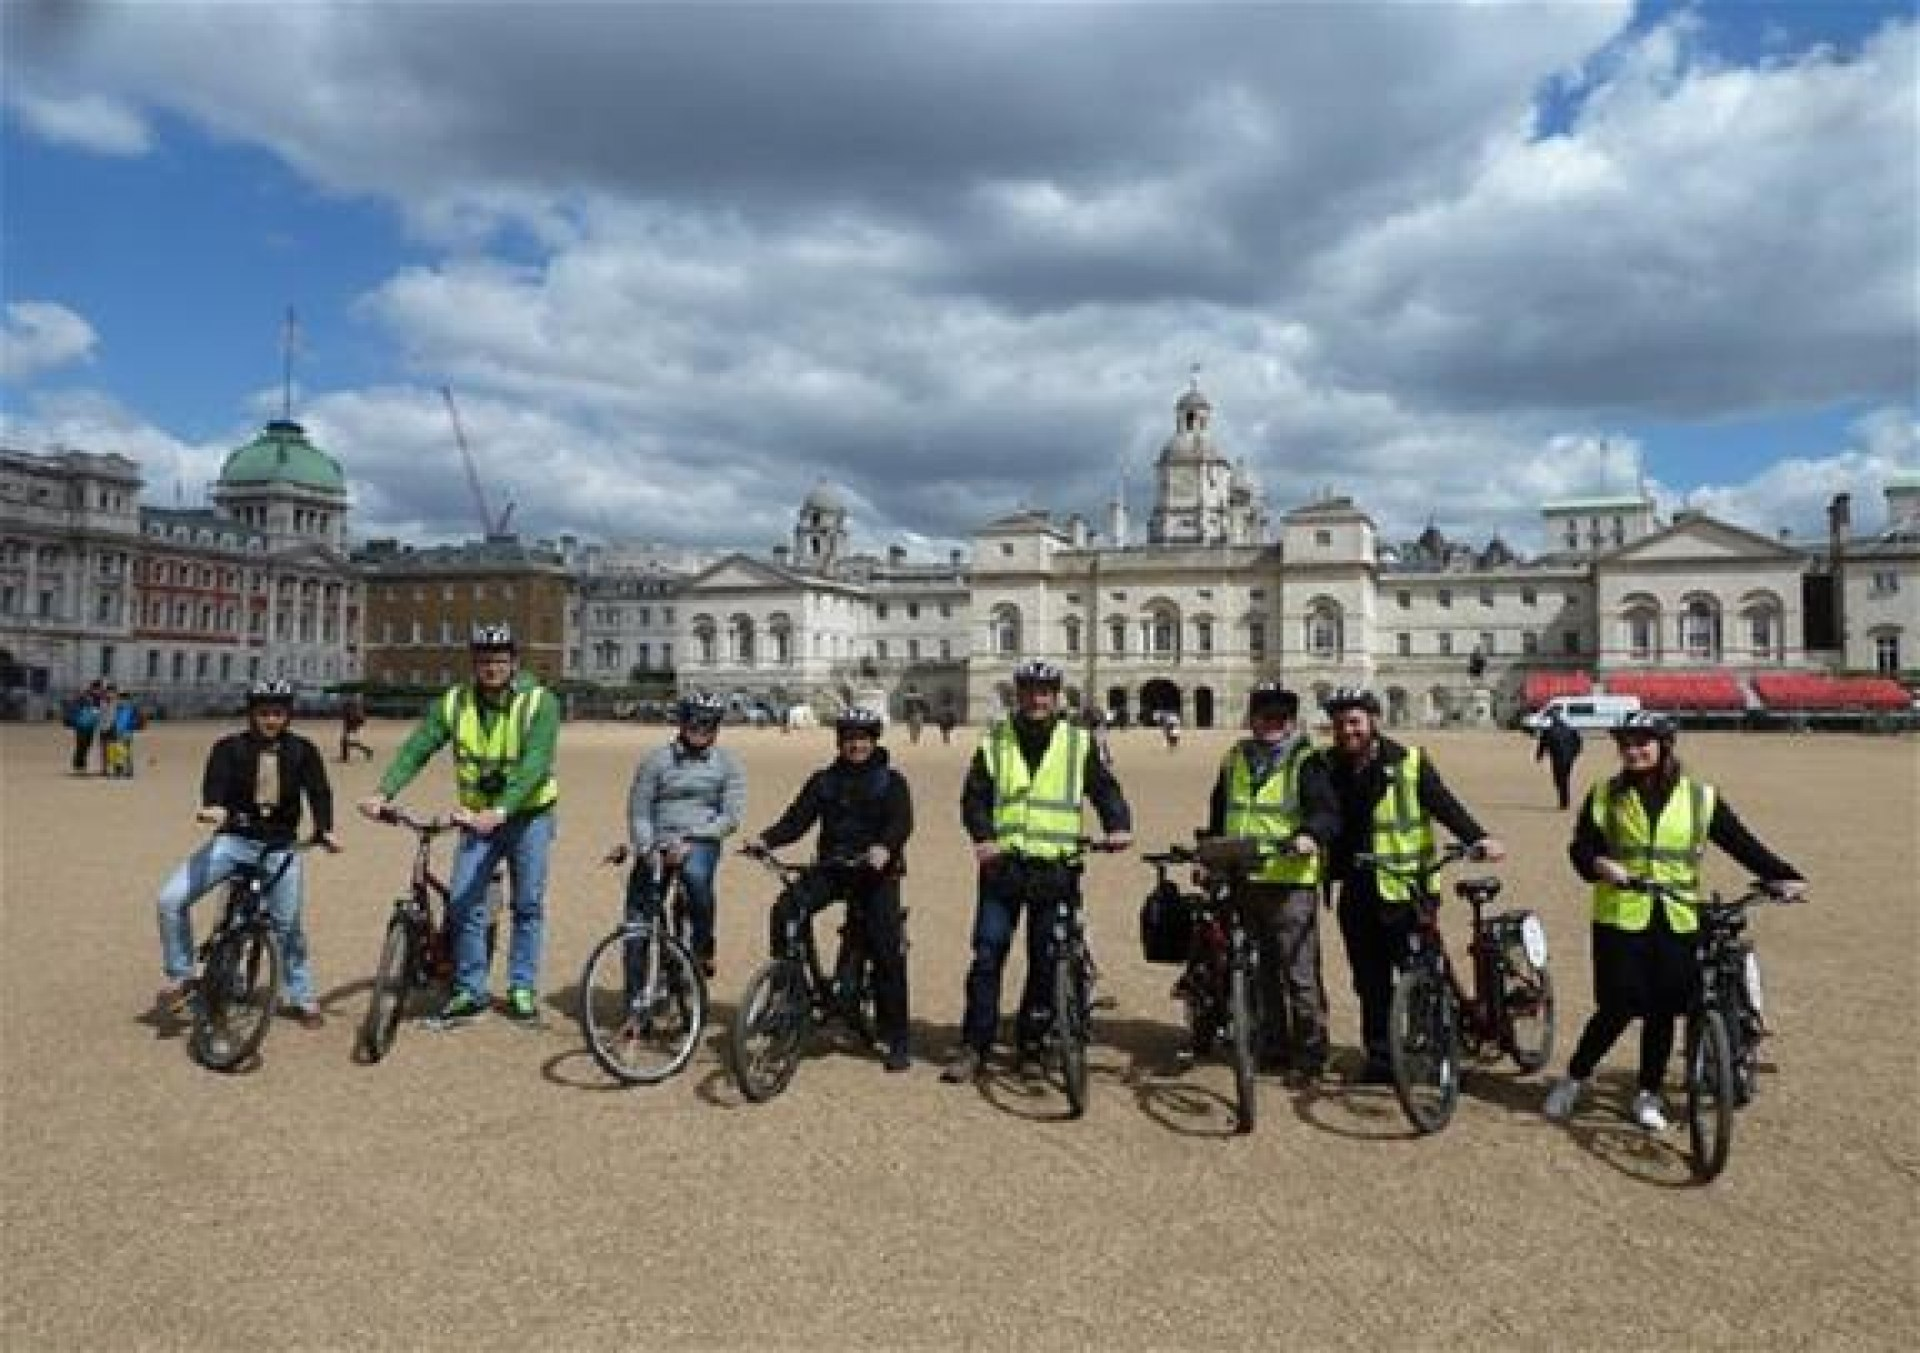 Royal Parks and Palaces Bike Tour of London